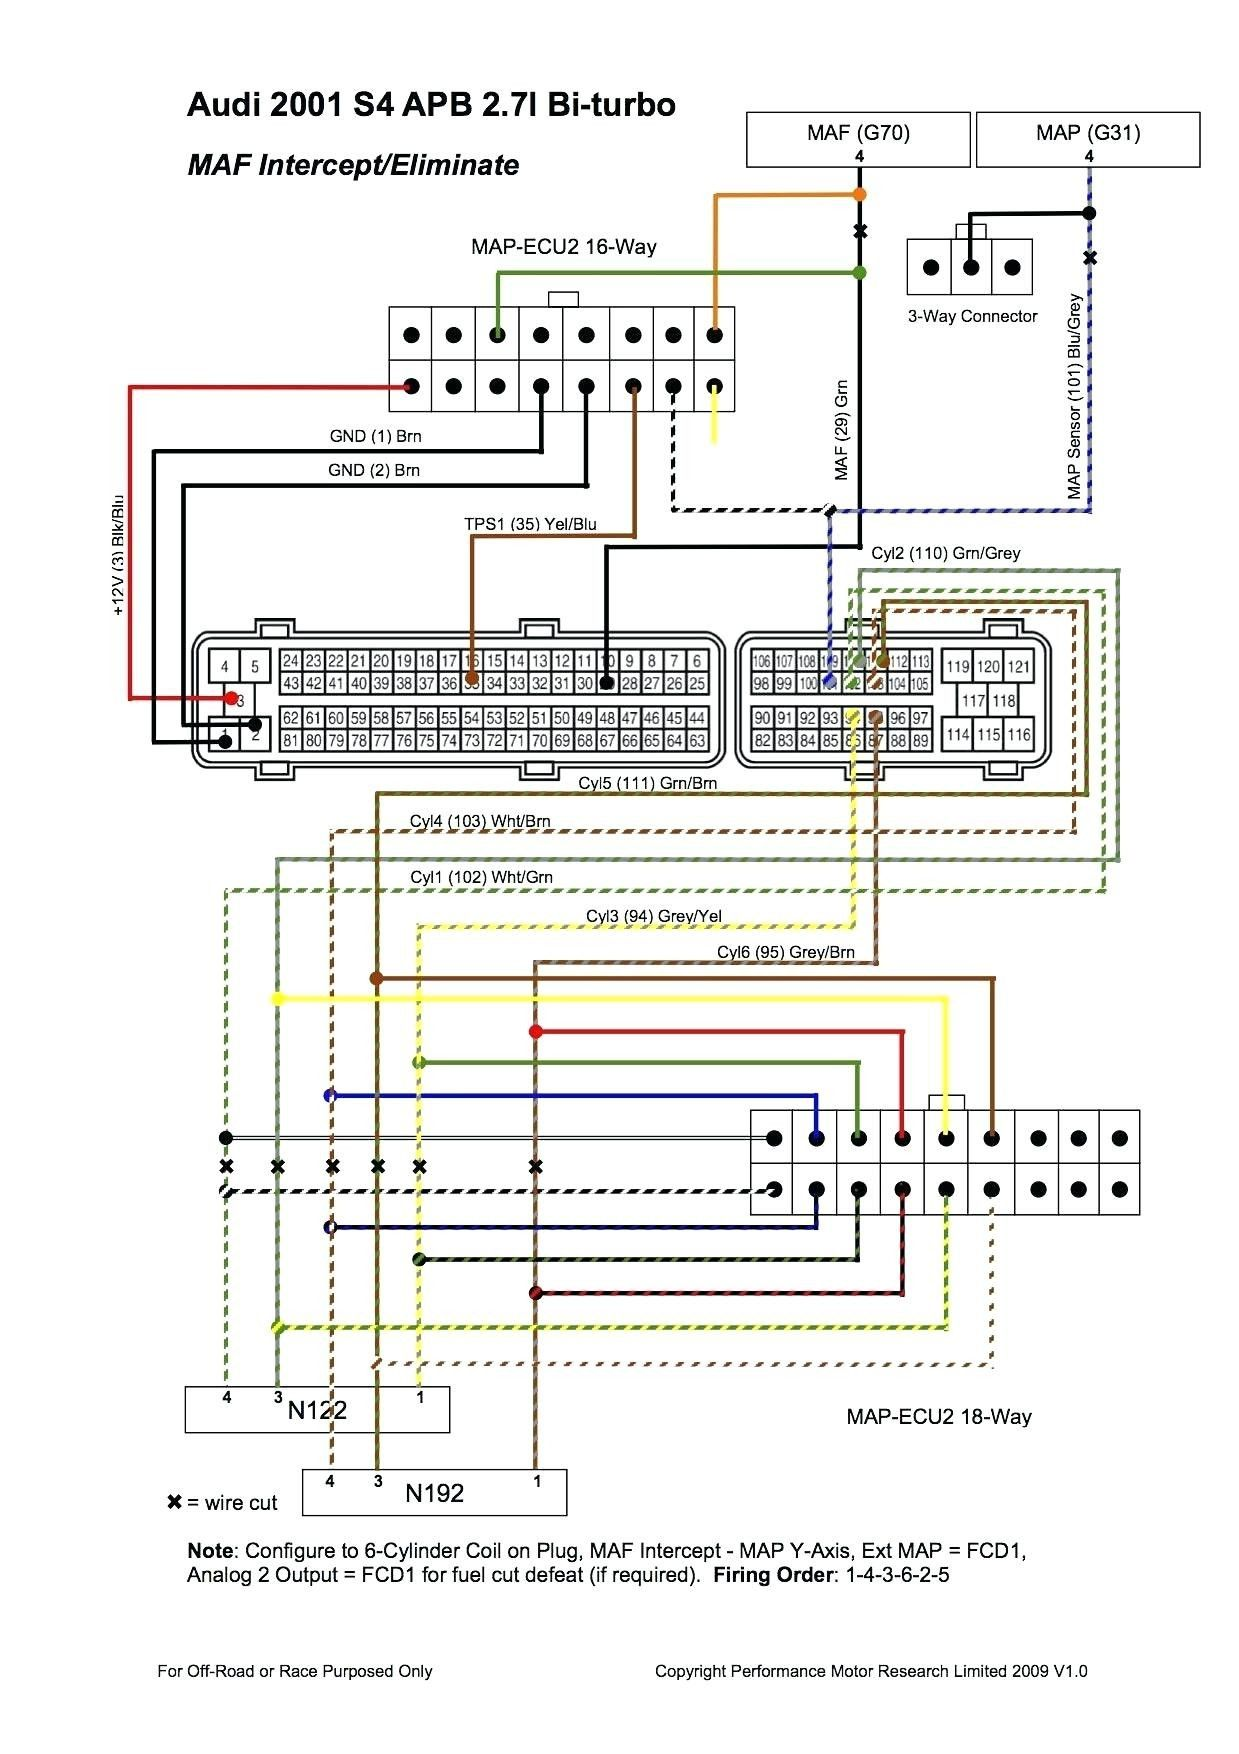 Ouku Double Din Wiring Diagram from i.pinimg.com